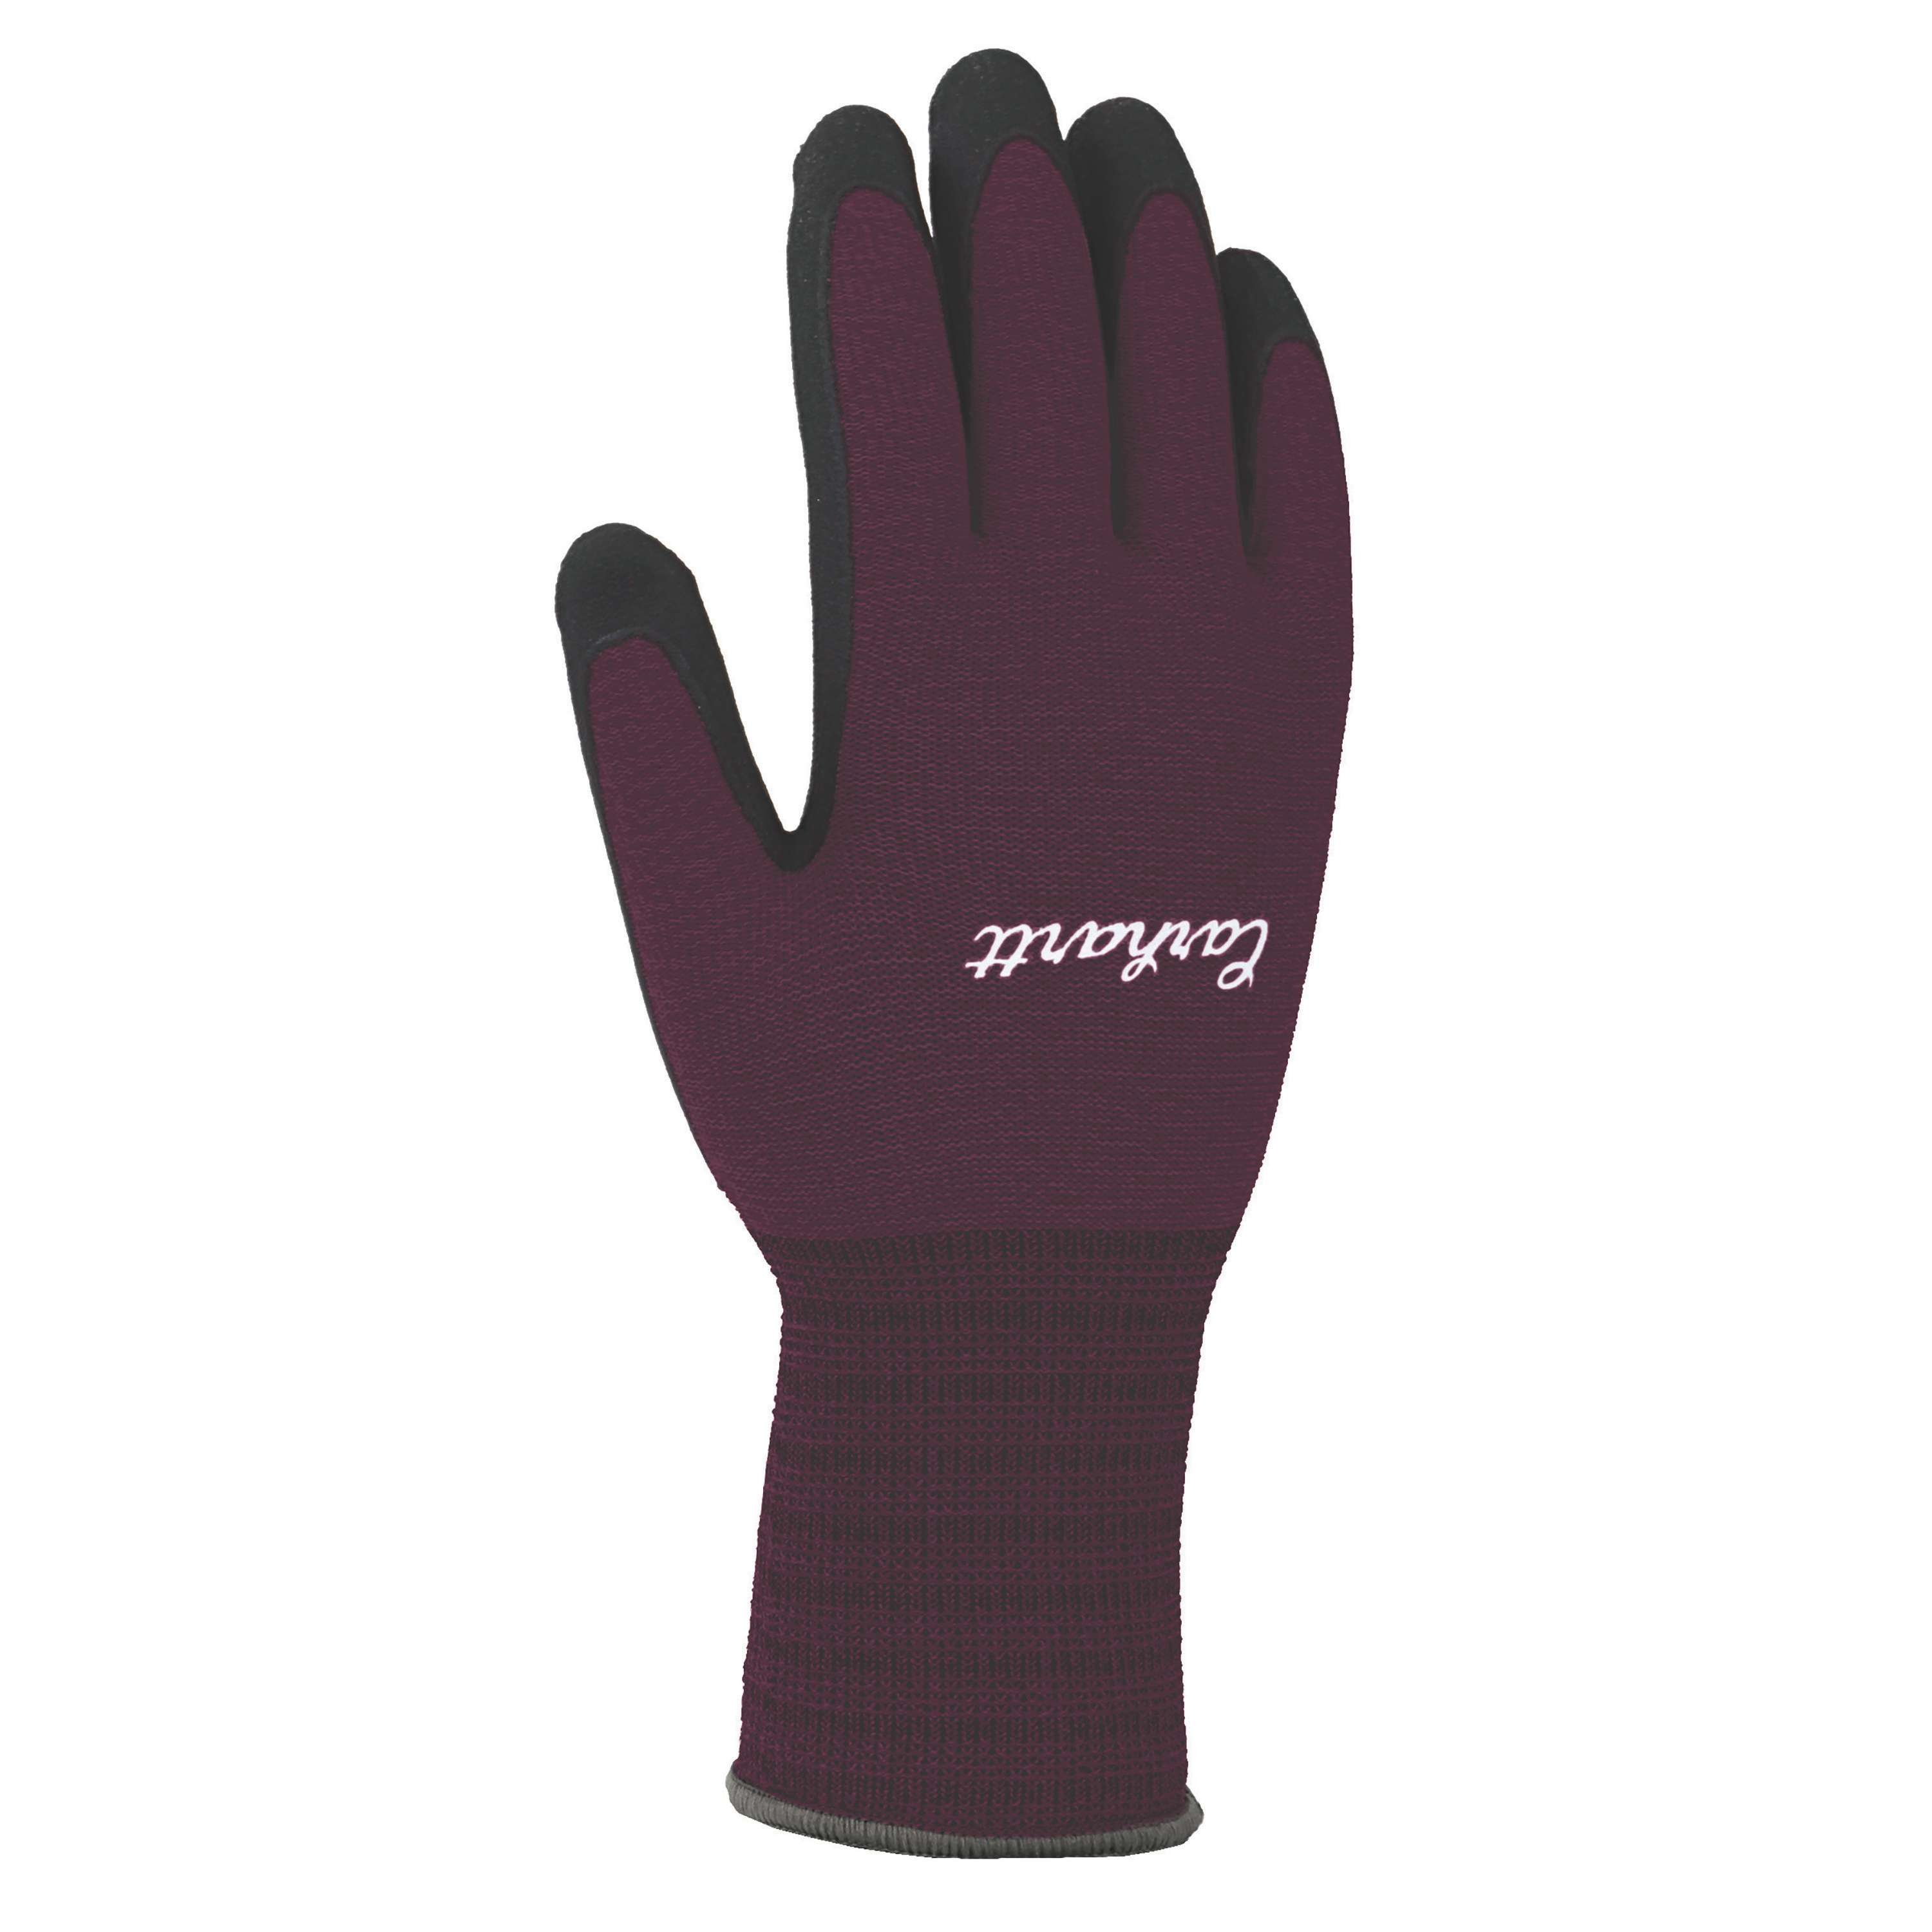 Carhartt All-Purpose Nitrile Grip Glove